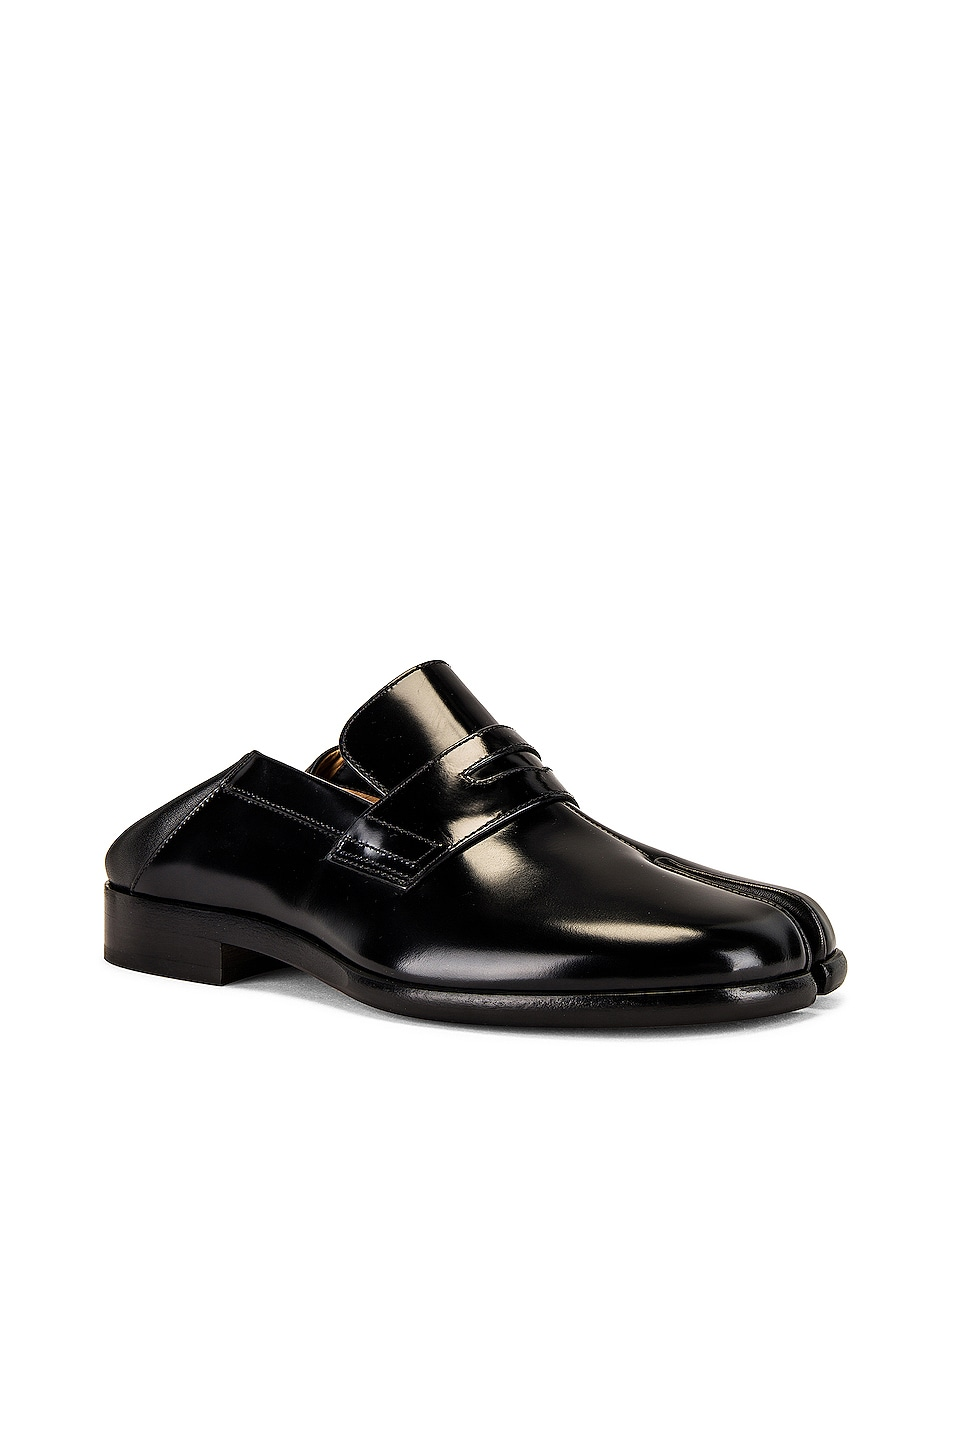 Image 1 of Maison Margiela Tabi Leather Loafers in Black